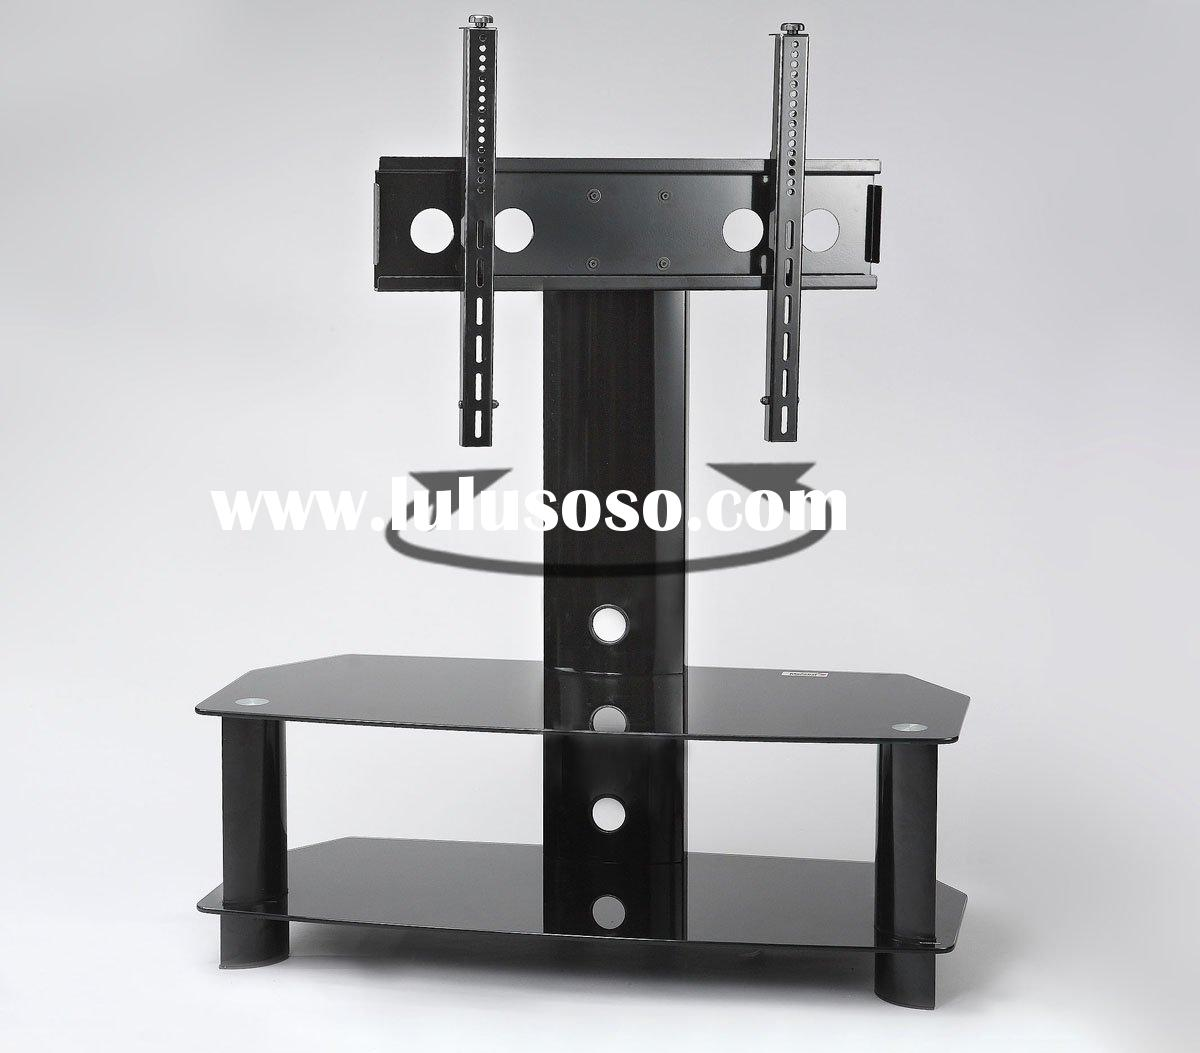 Lcd Tv Mdf Table Lcd Tv Mdf Table Products Lcd Tv Mdf